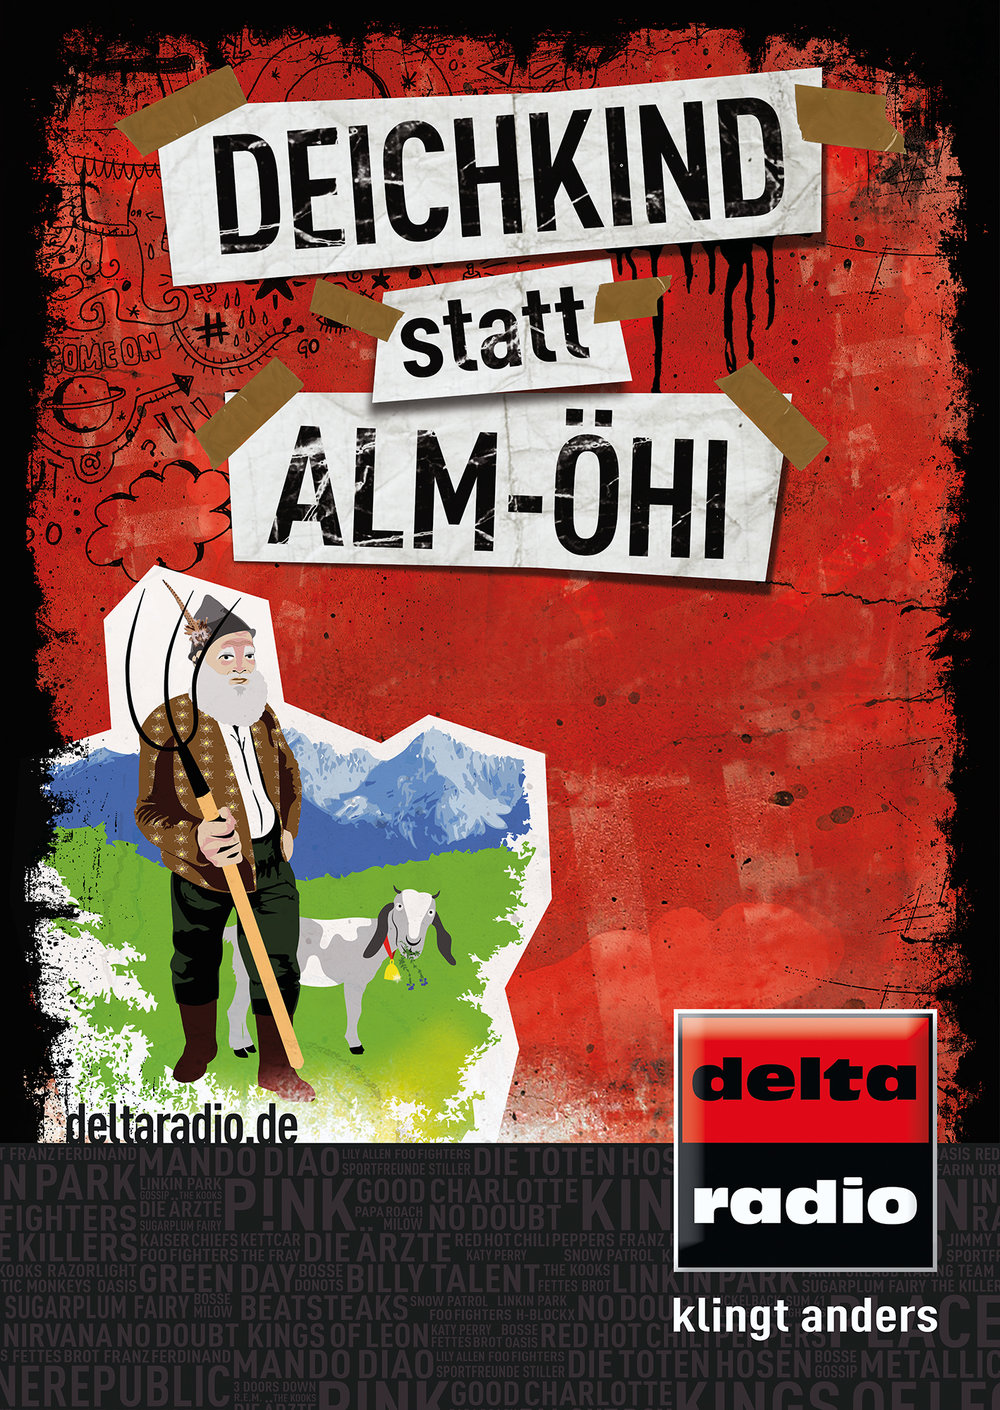 rbtq_Illustration_Seiser_Illustratorin_Hamburg_Editorial_DeltaRadio_Deichkind.jpg